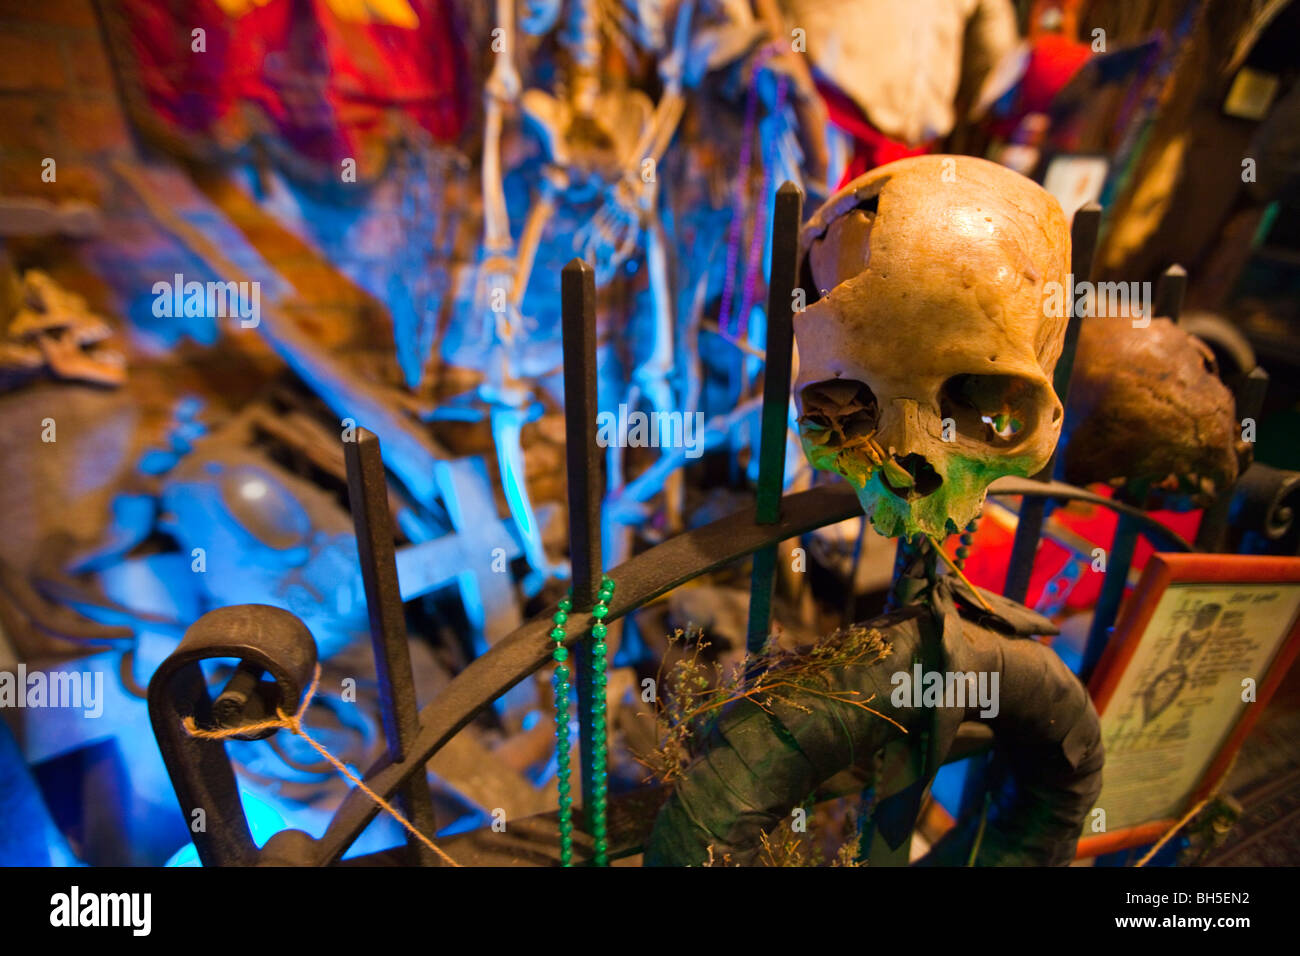 New Orleans Historic Voodoo Museum in the French Quarter of New Orleans, LA - Stock Image